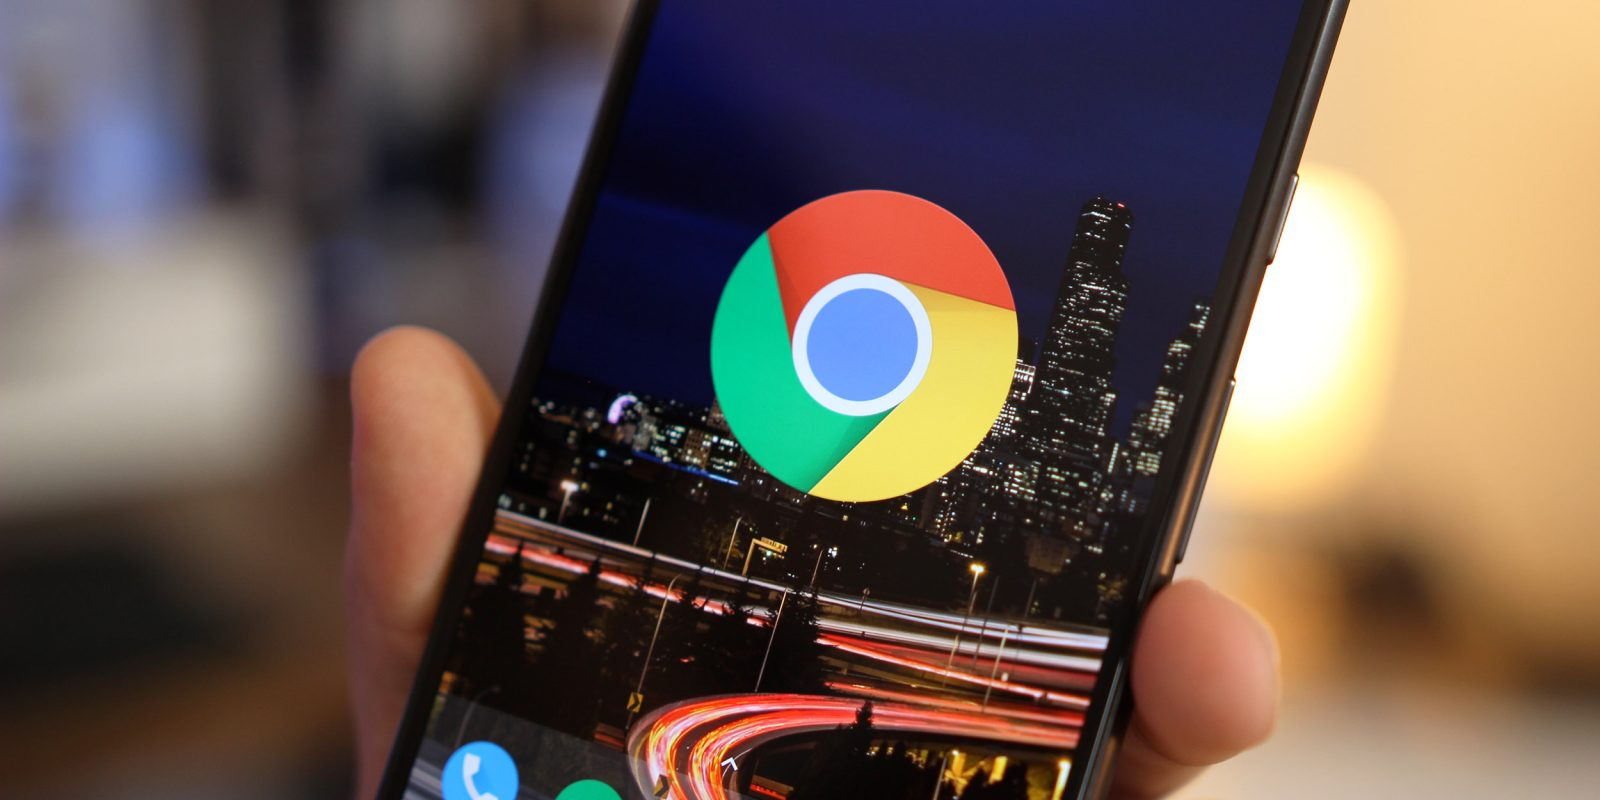 Chrome 75 for Android rolling out w/ new password autofill & creation UI